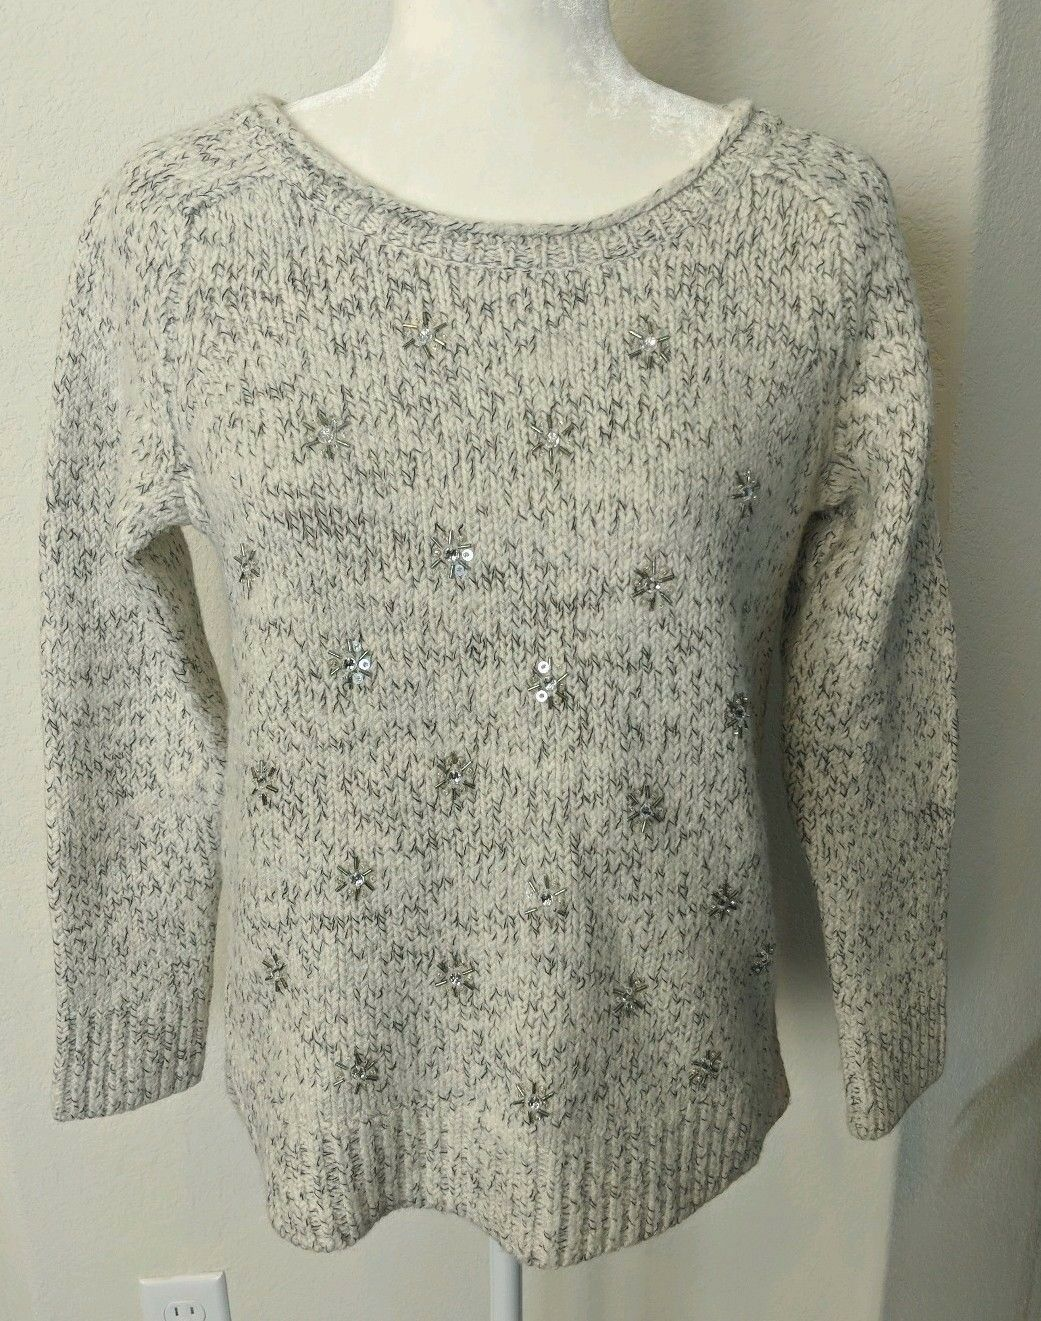 Ann Taylor LOFT Beaded Snowflake Sweater Sz M Ivory Marbled Sequin Wool